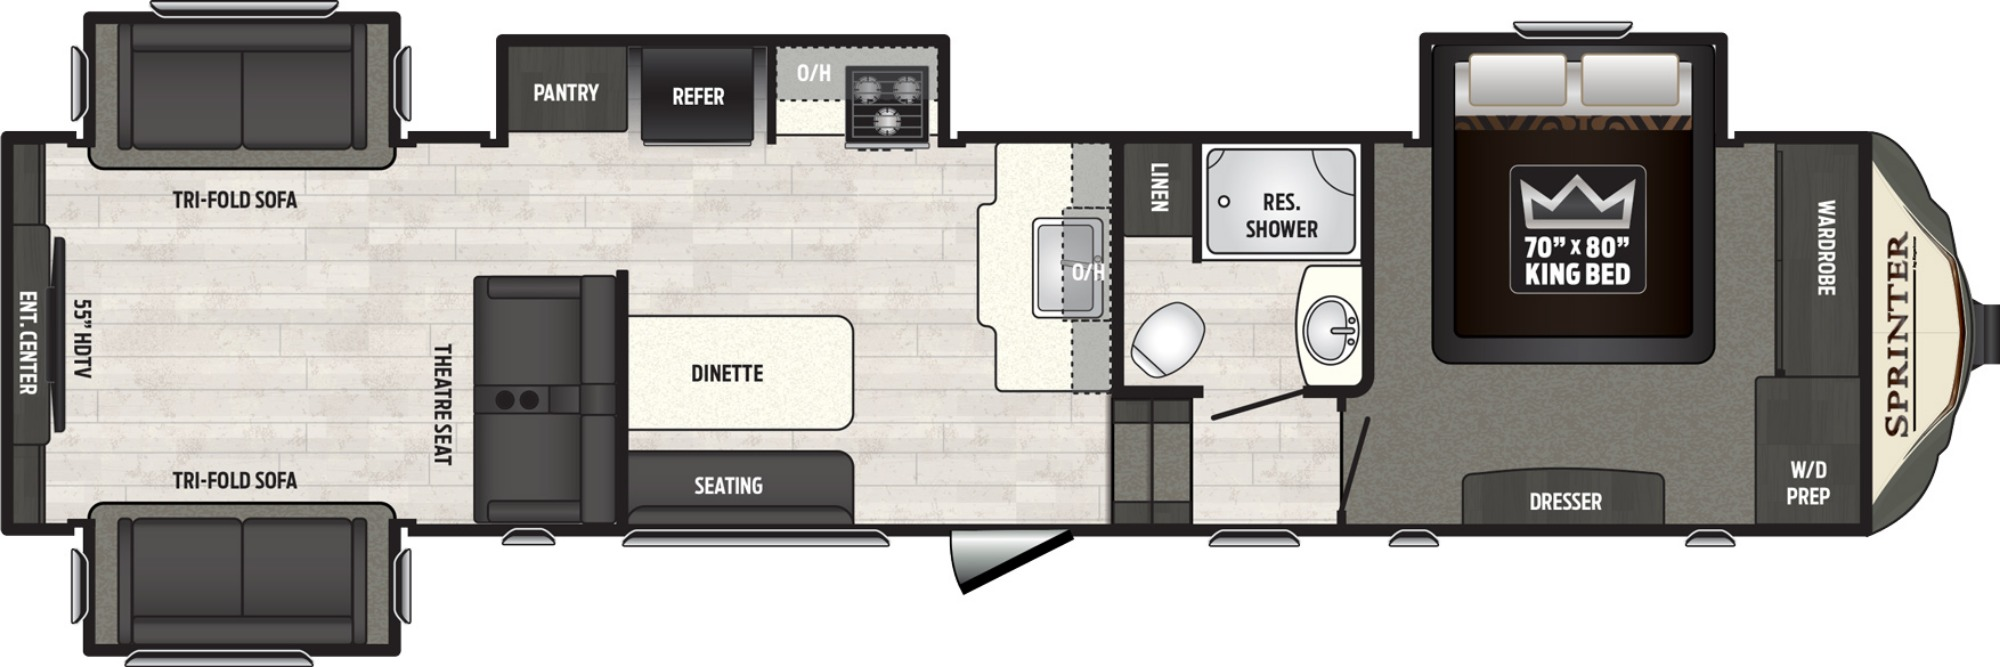 Bedroom : 2019-KEYSTONE-3530FWDEN